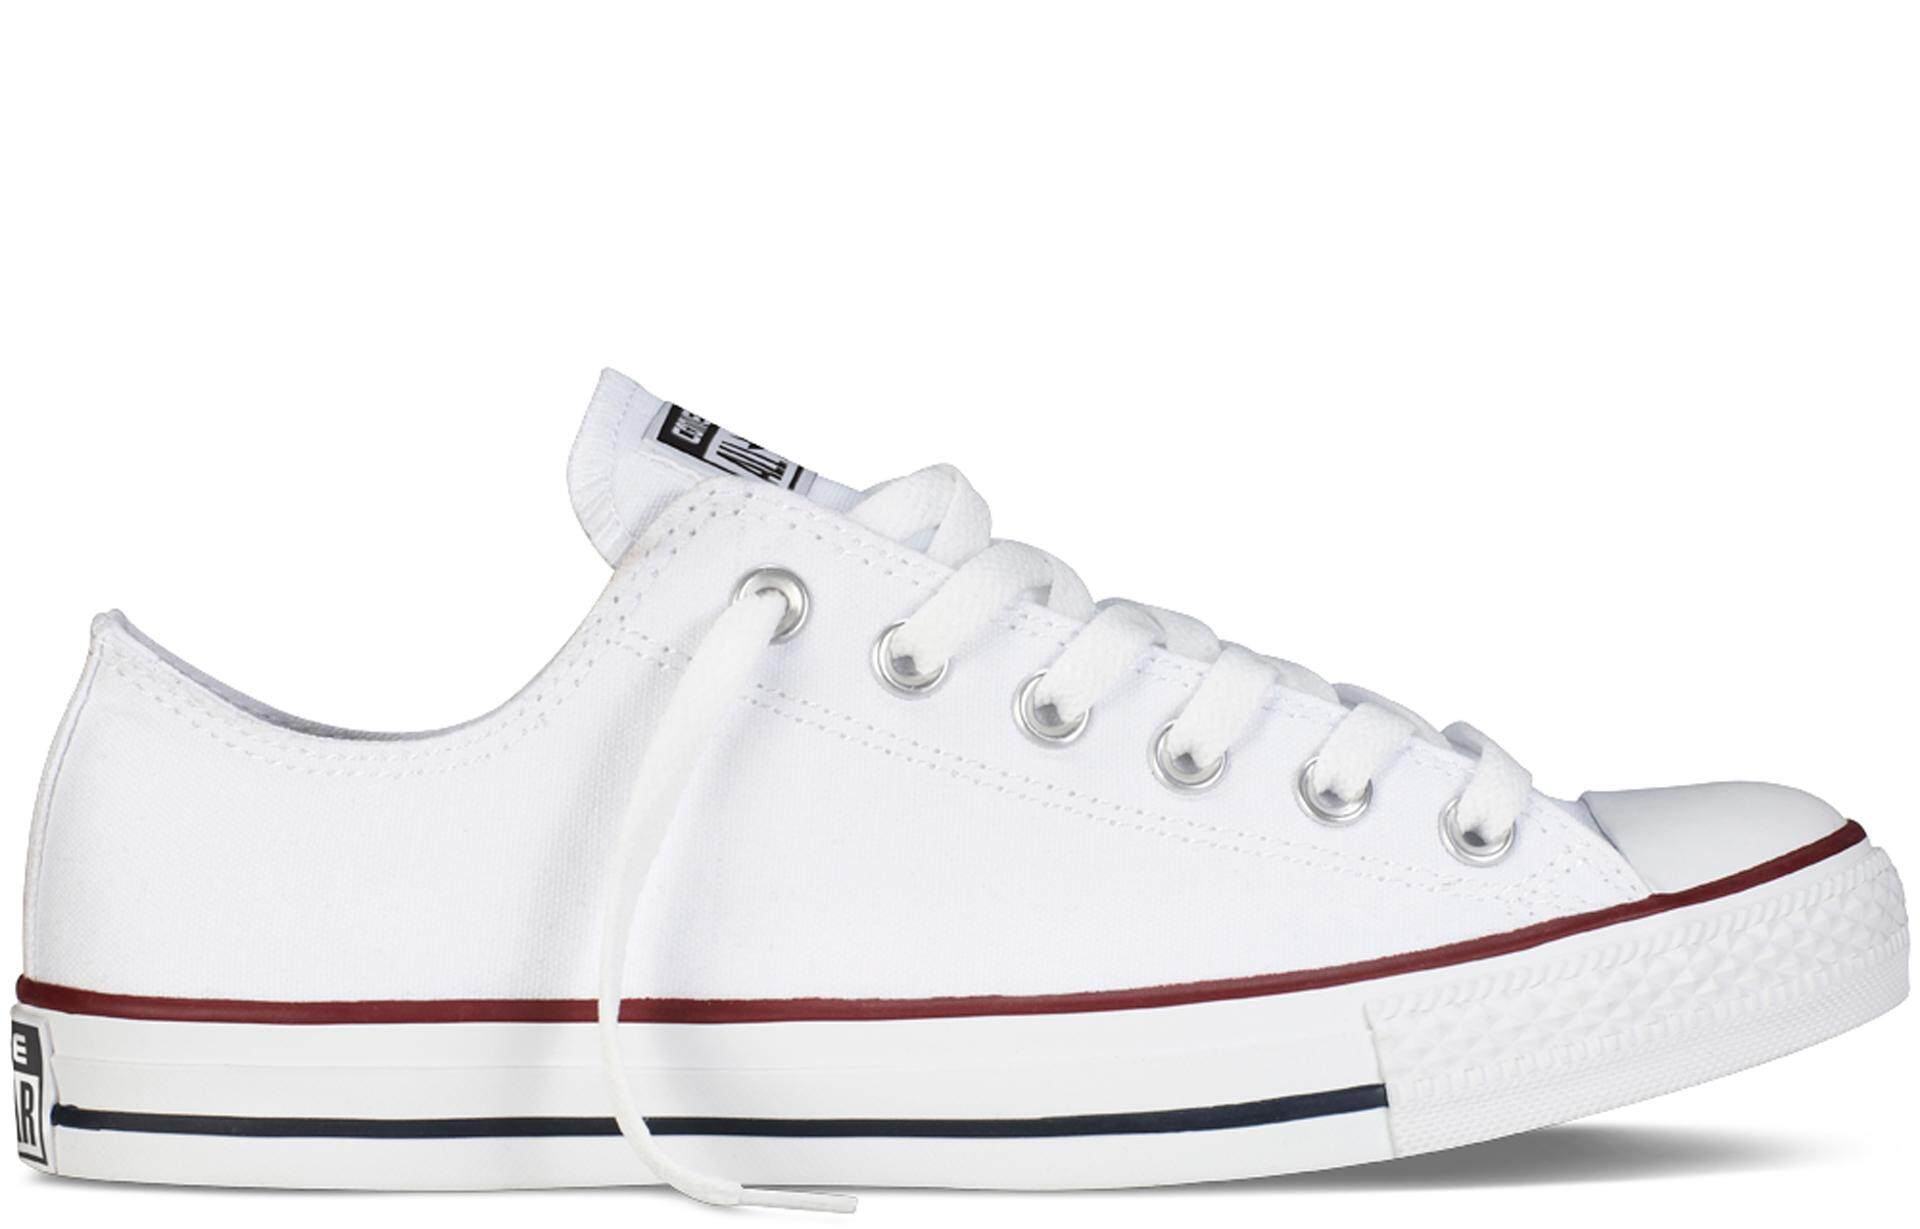 Converse Mens Shoes Price In Malaysia Best Sandal Kulit Pria Rc237 Chuck Taylor All Star Ox White